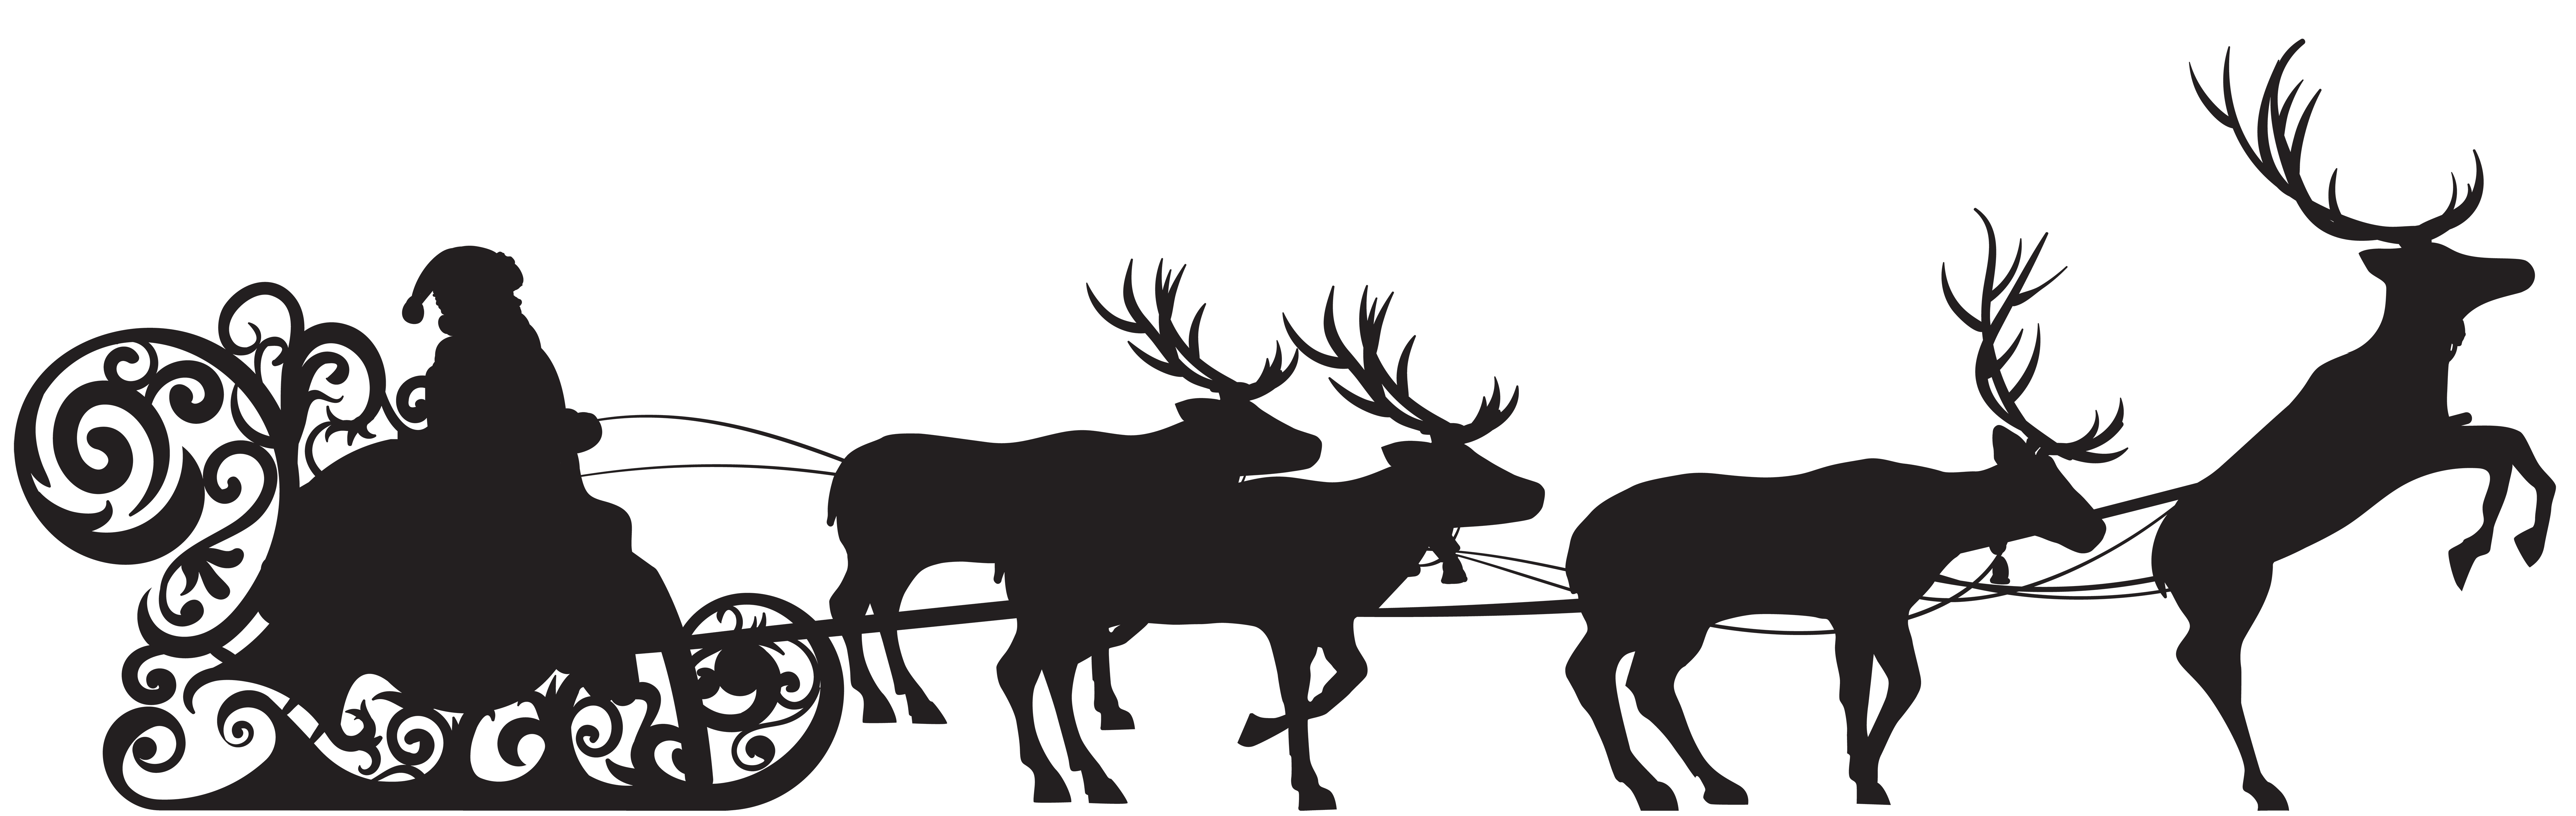 Santa claus reindeer sled. Deer clipart shadow